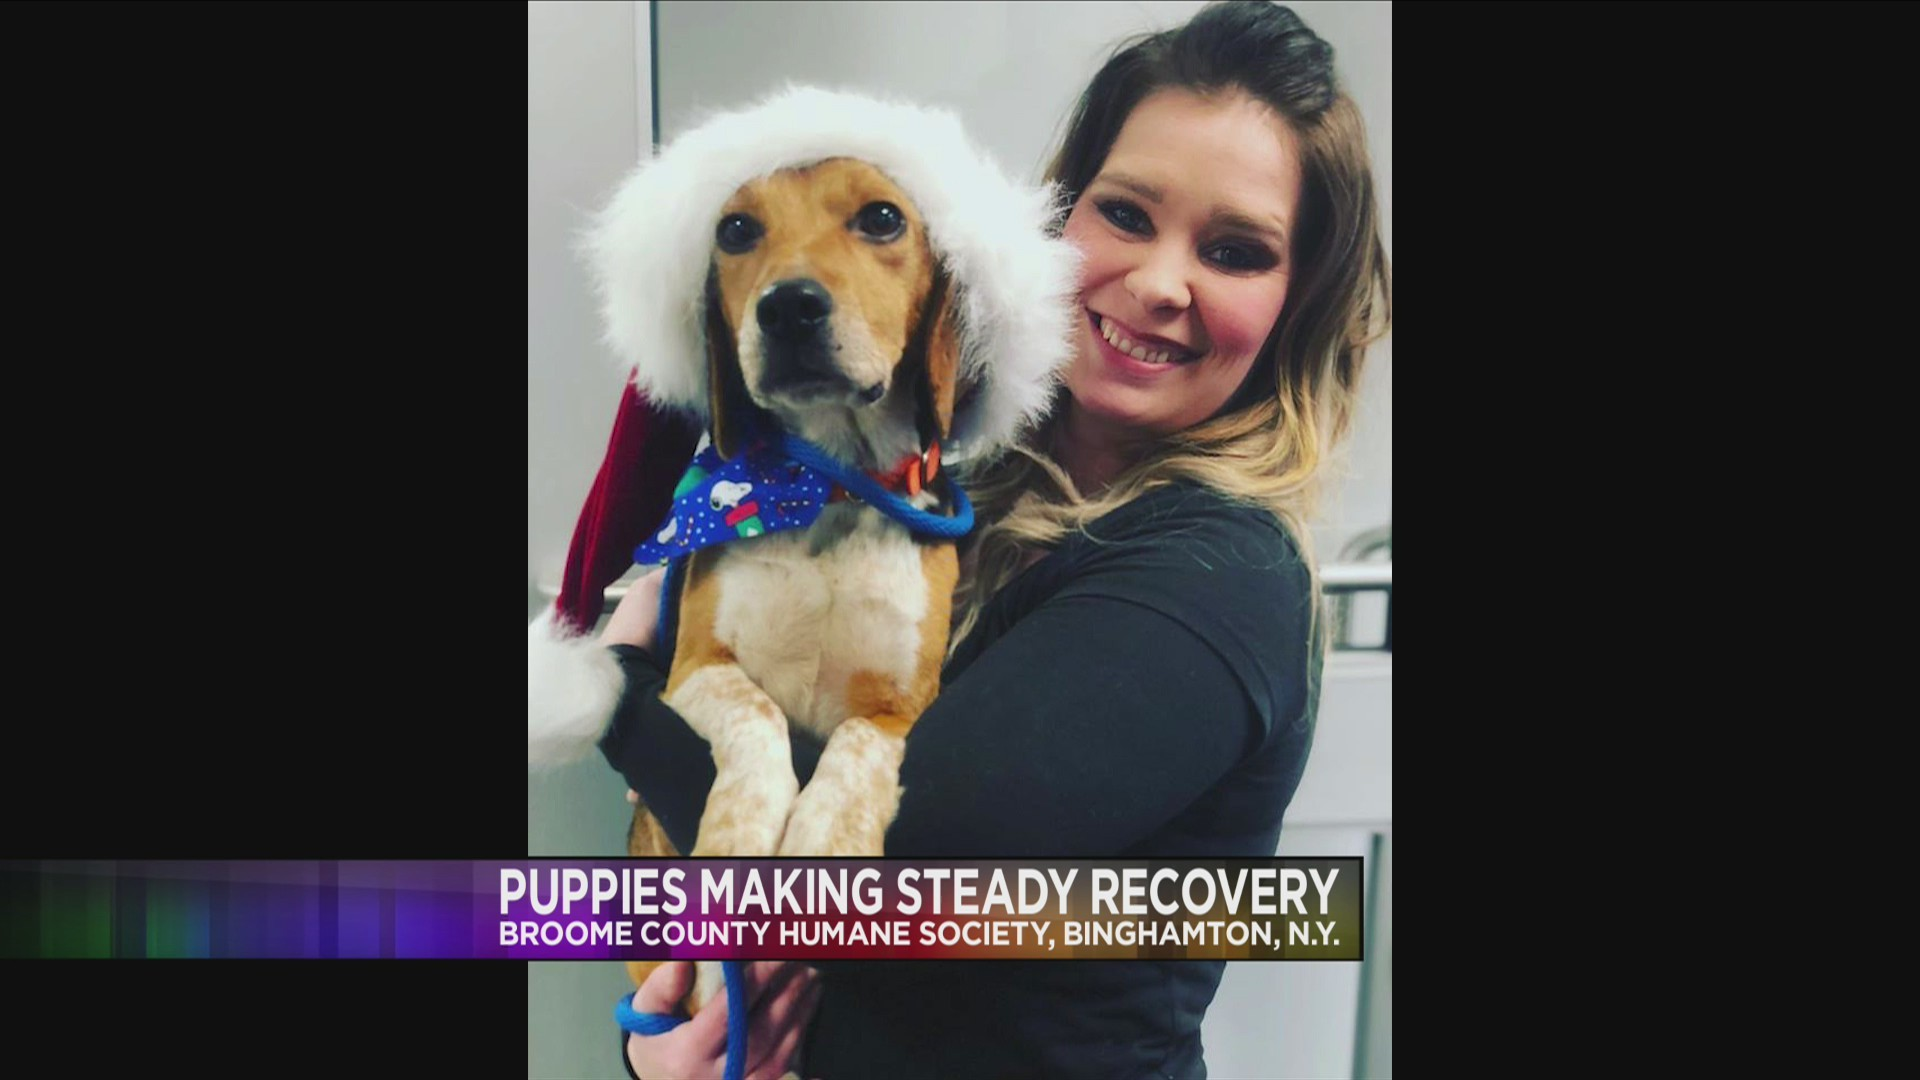 Trooper_the_pup_still_recovering_1_20181217000835